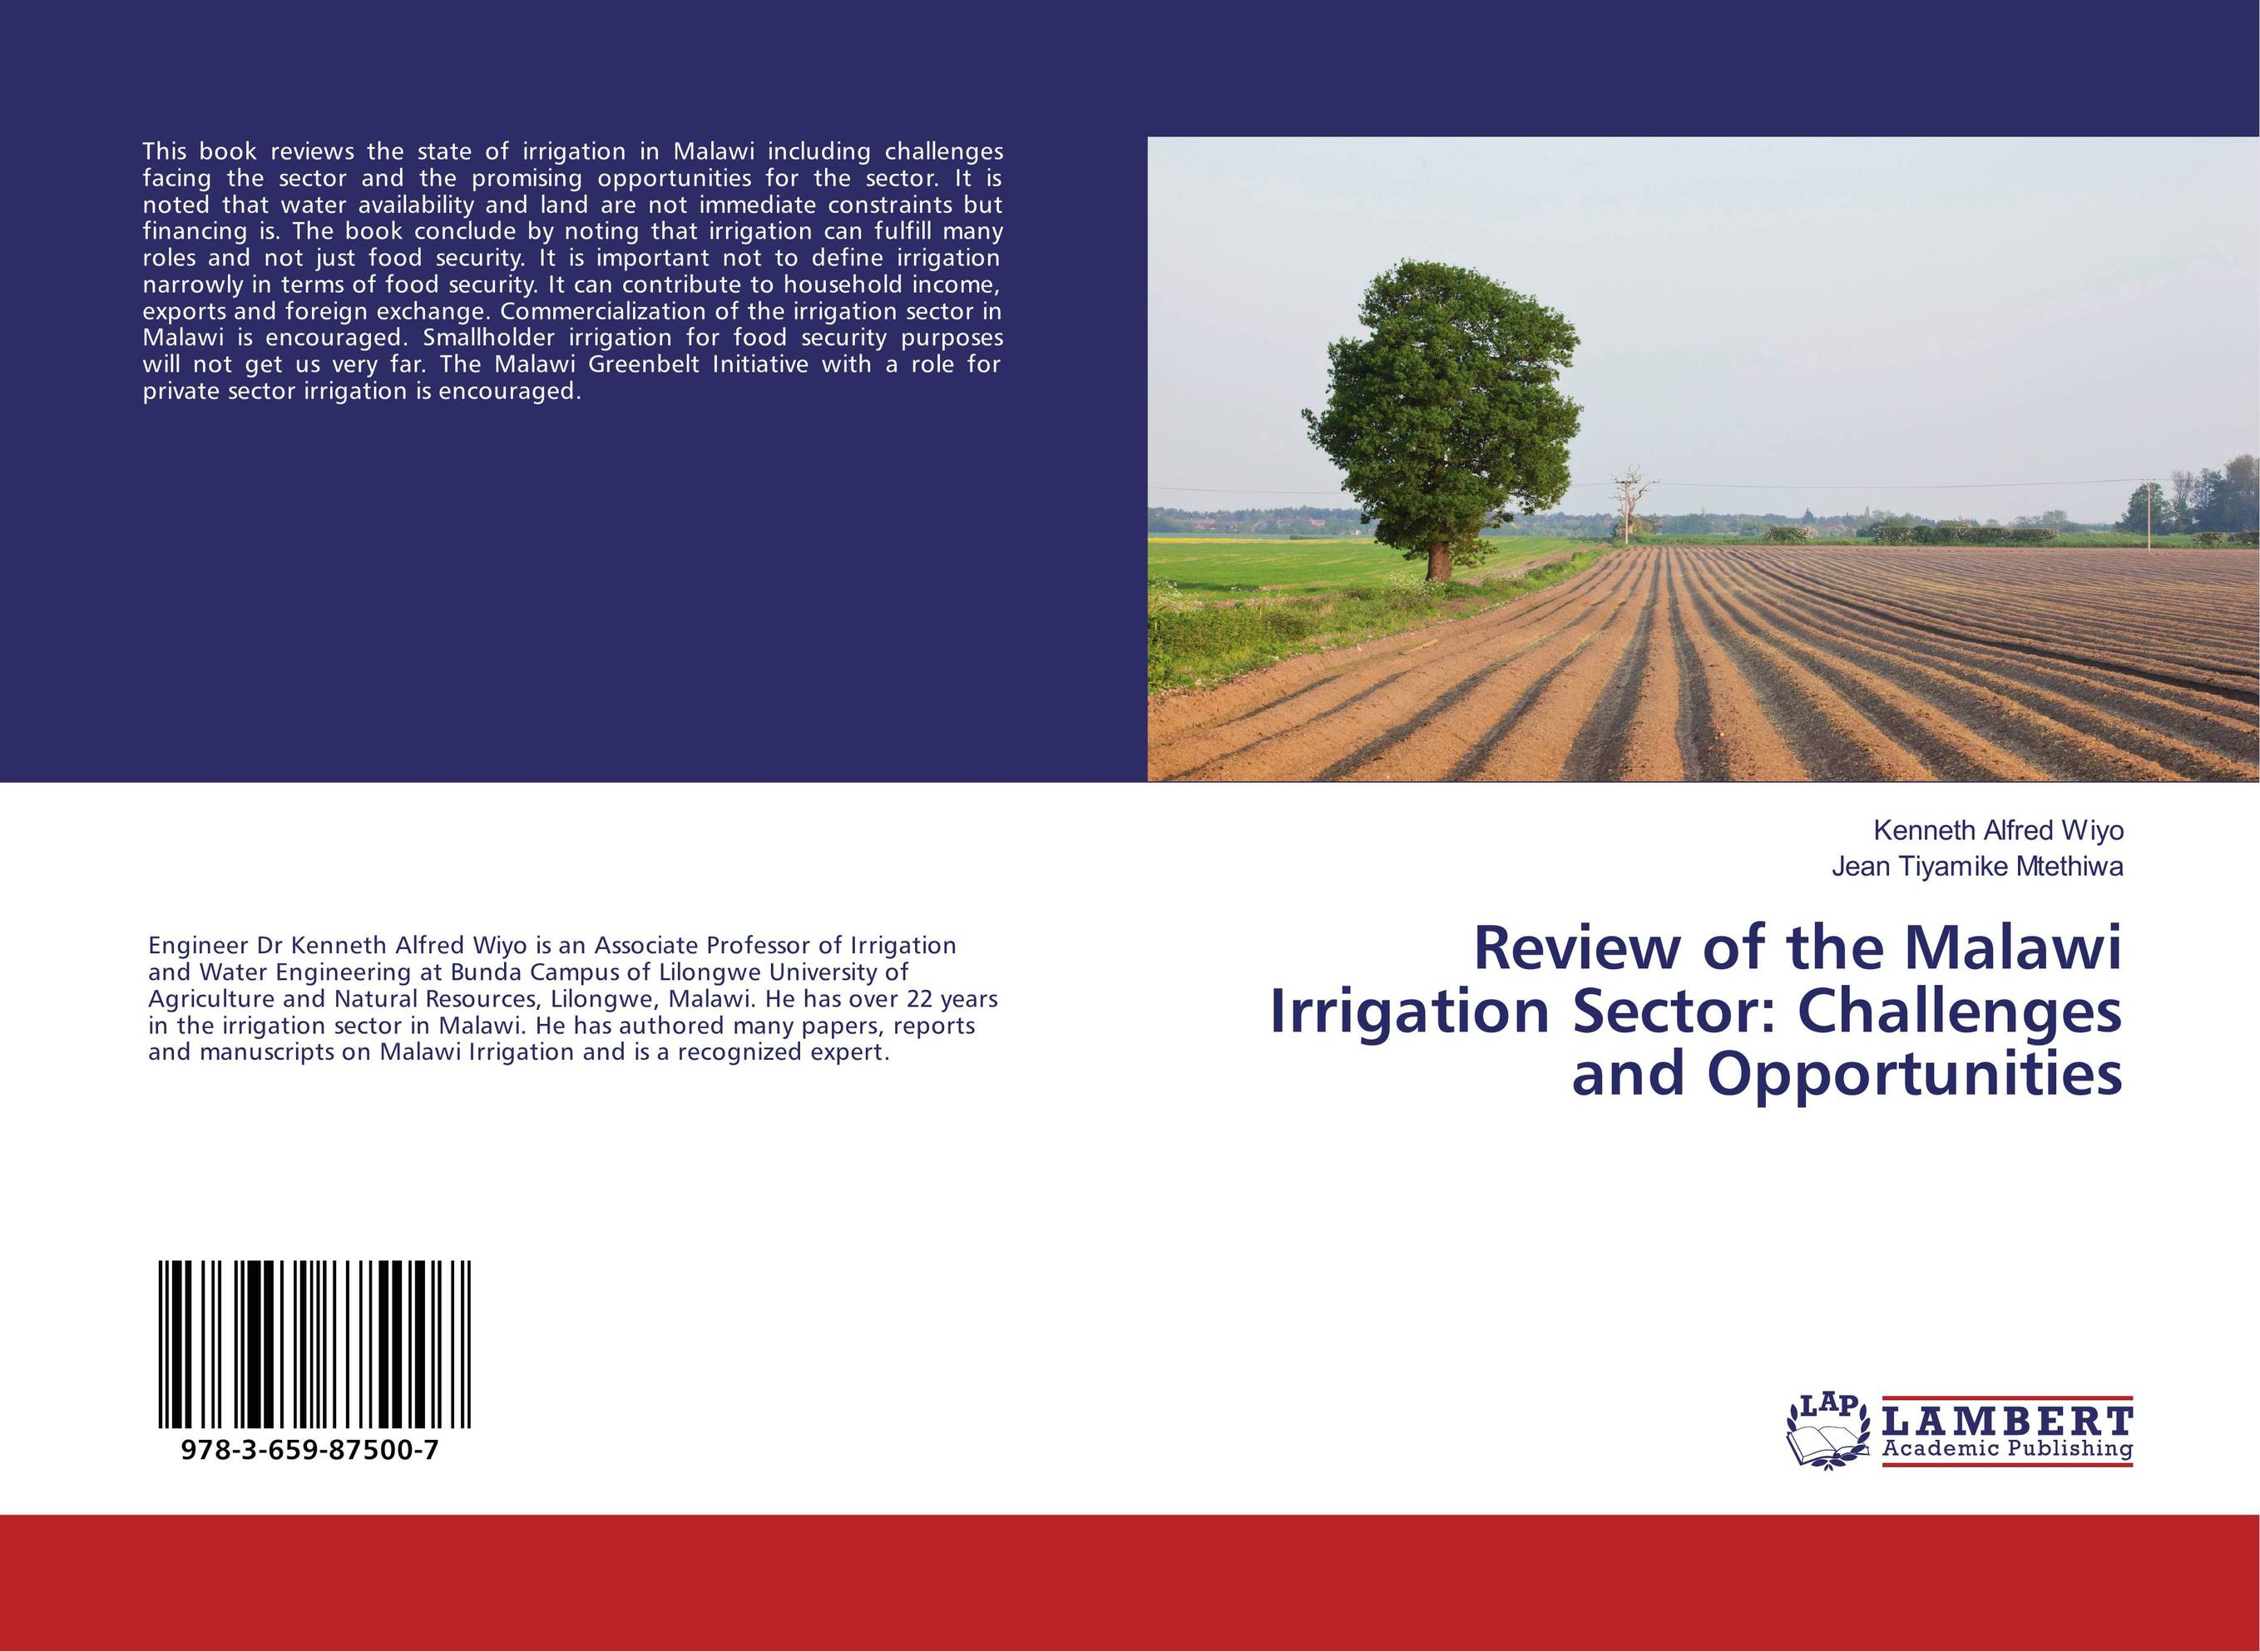 Review of the Malawi Irrigation Sector: Challenges and Opportunities sikhulumile sinyolo smallholder irrigation water security and rural household welfare